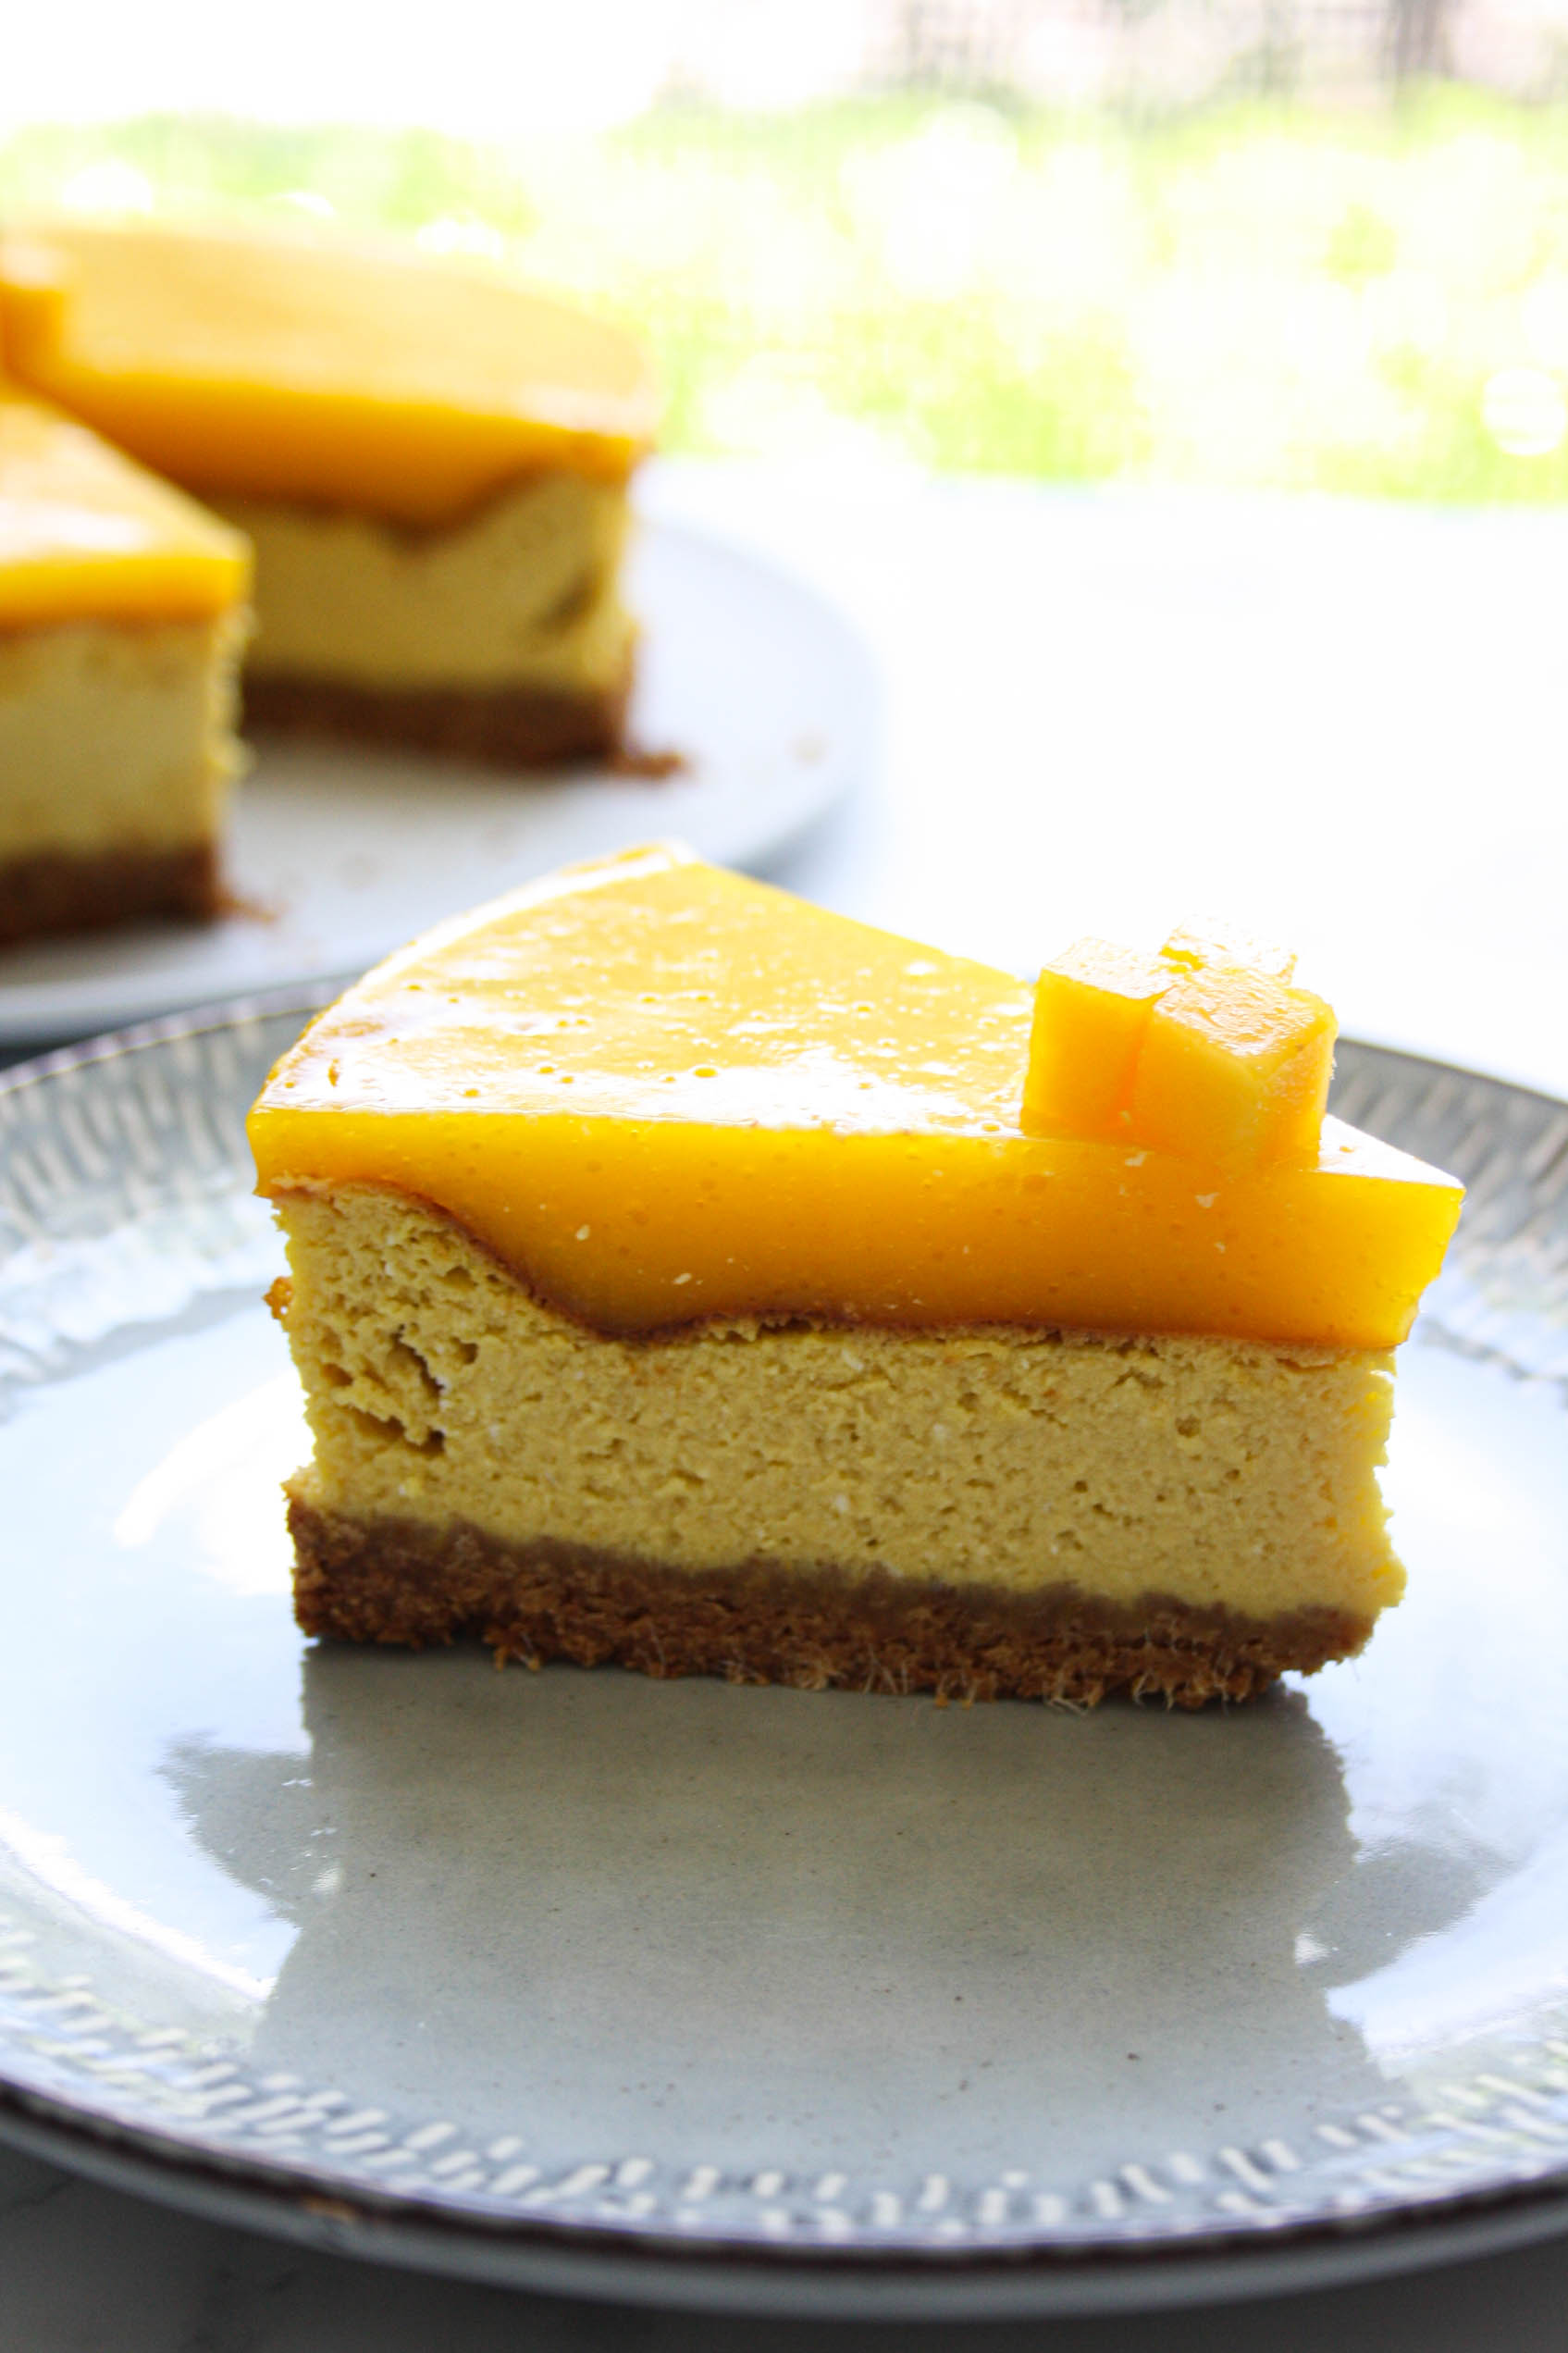 detail of a slice of mango cheesecake from the side